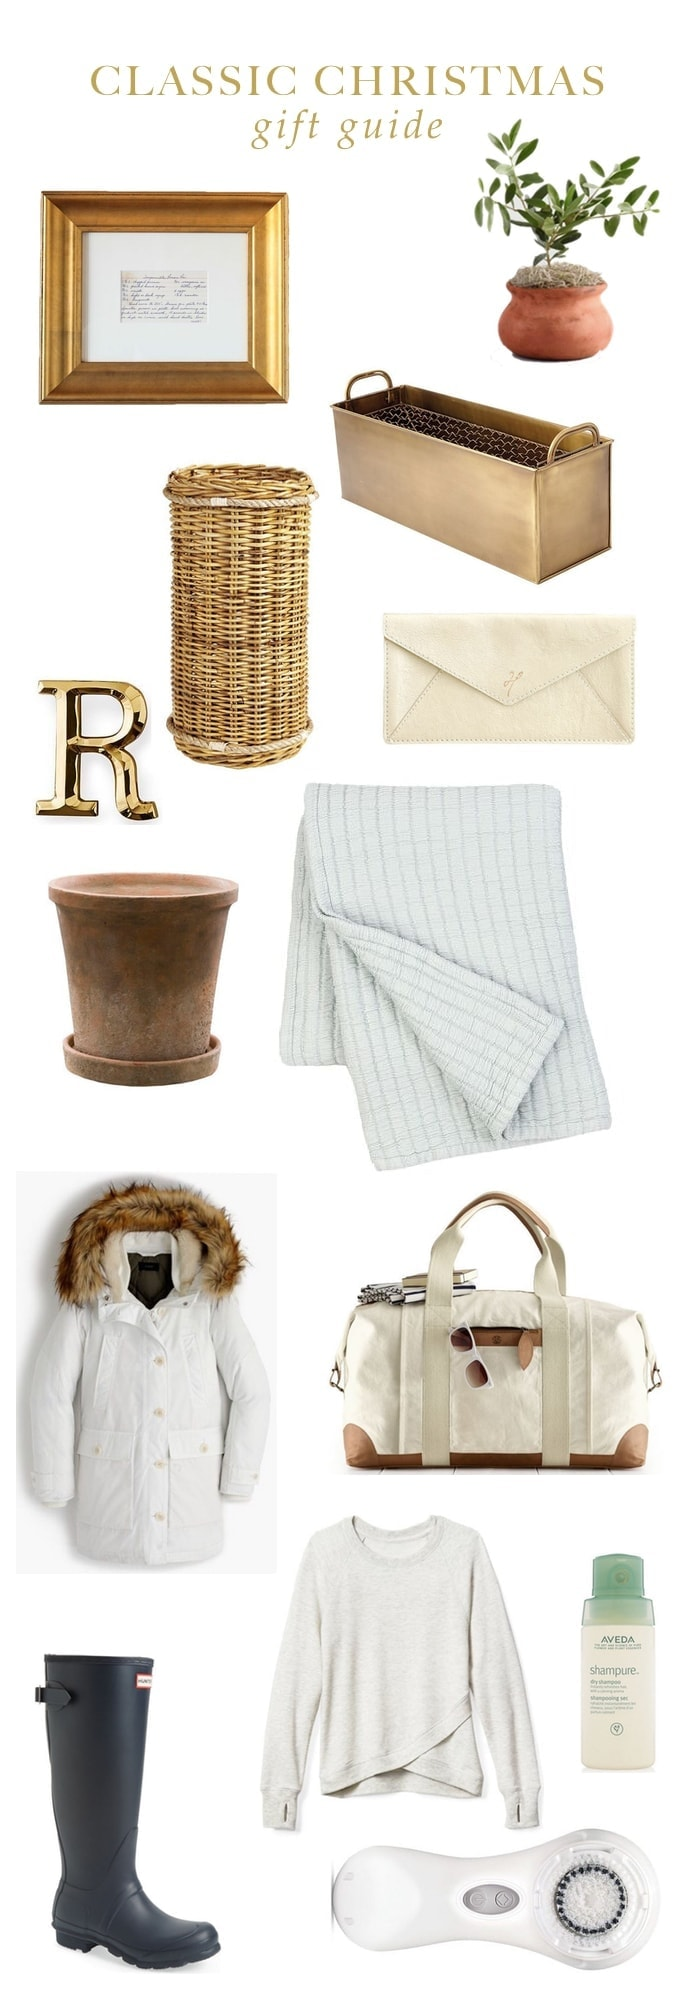 timeless and beautiful christmas gift ideas